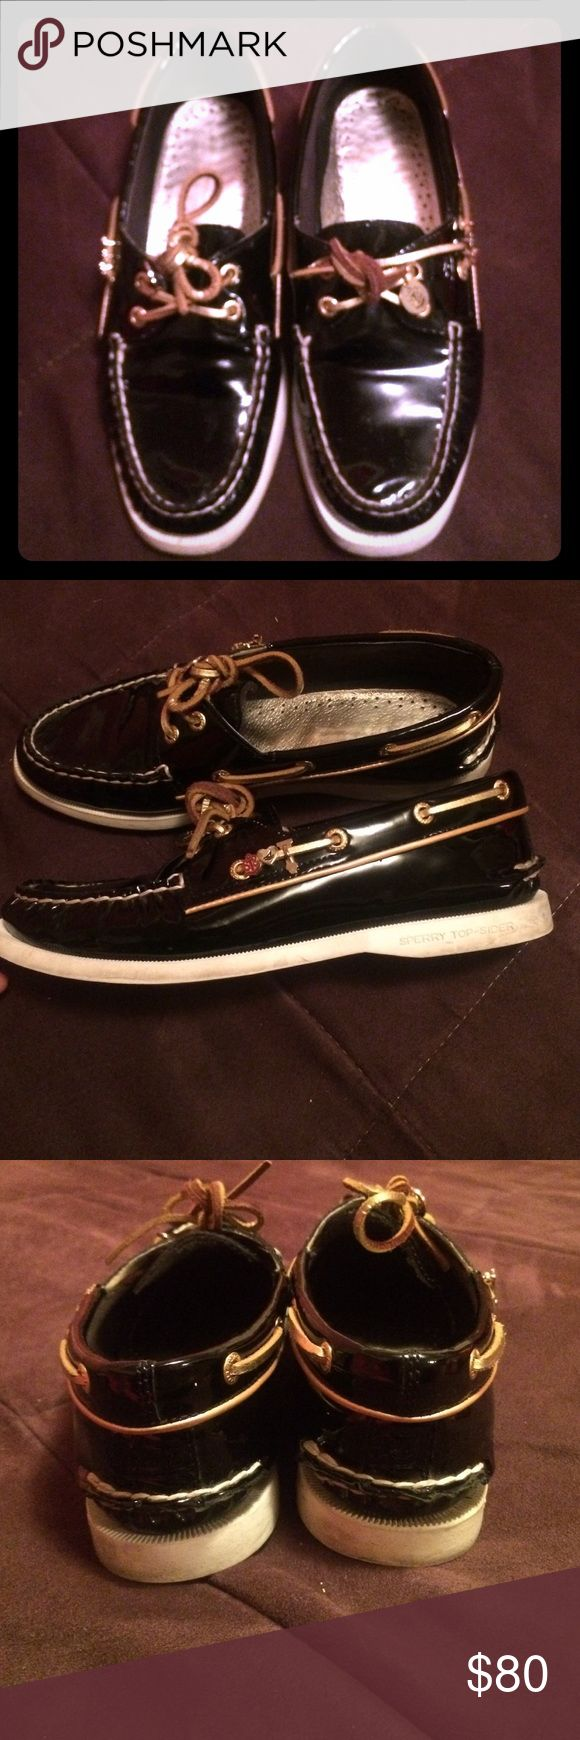 Black Sperry Shoes Black patent leather shoes Sperry Top-Sider Shoes Flats & Loafers